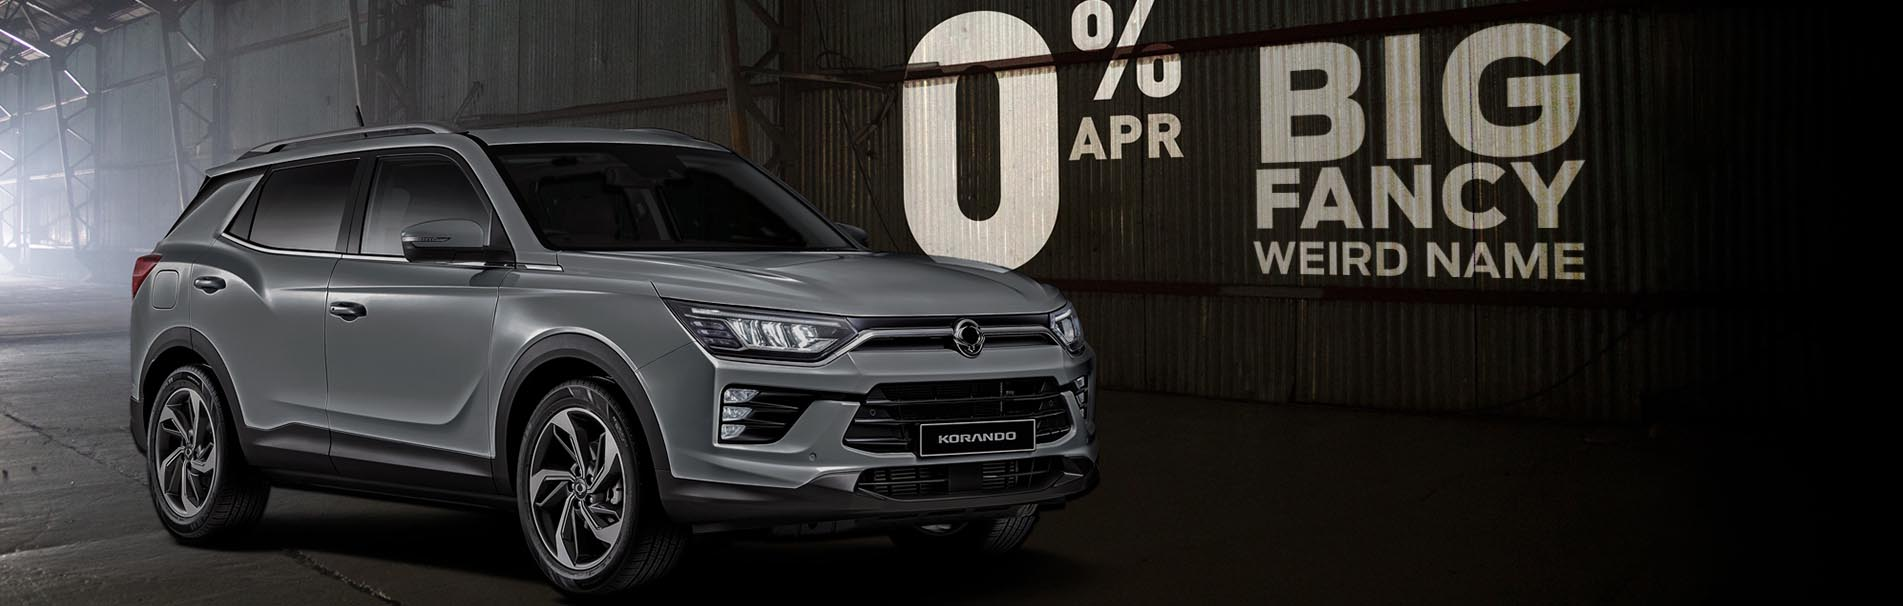 new-korando-zero-percent-hire-purchase-finance-sli